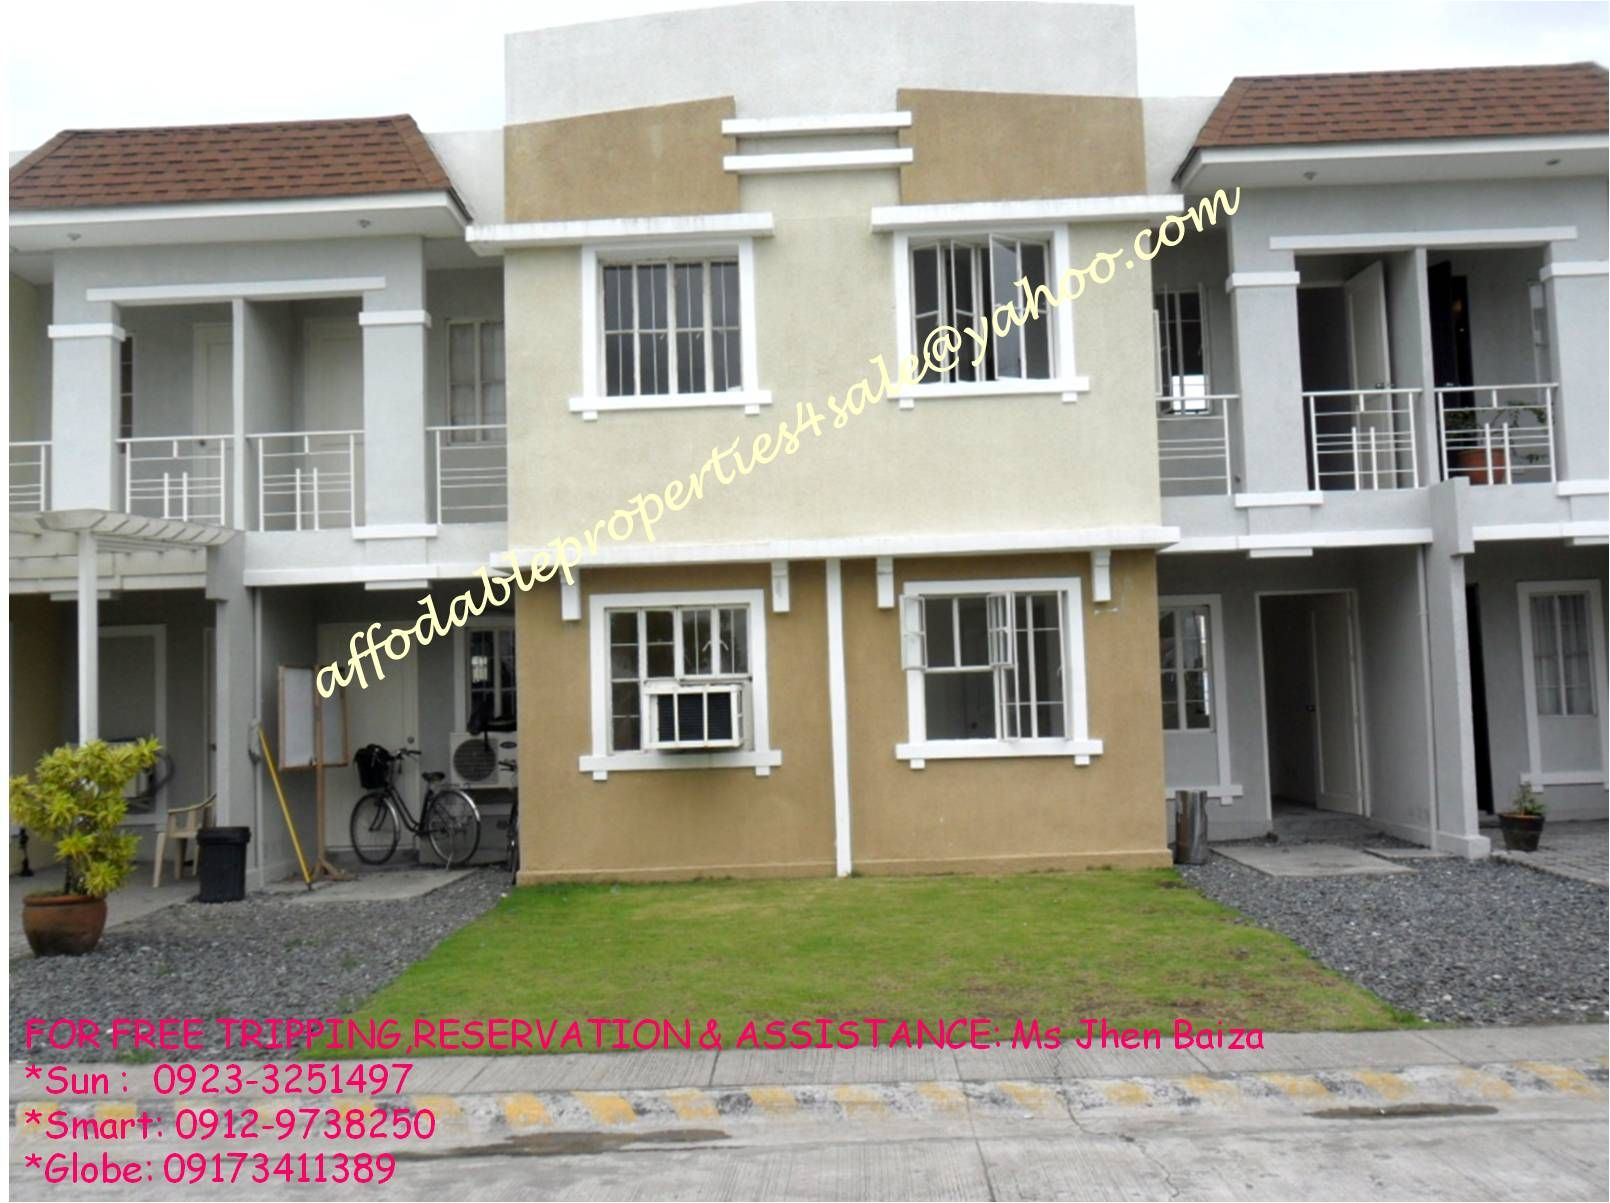 Affordable townhouse for sale in Cavite philippines 2 storey with 3 bedrooms and carport very near in manila via CAVITEX